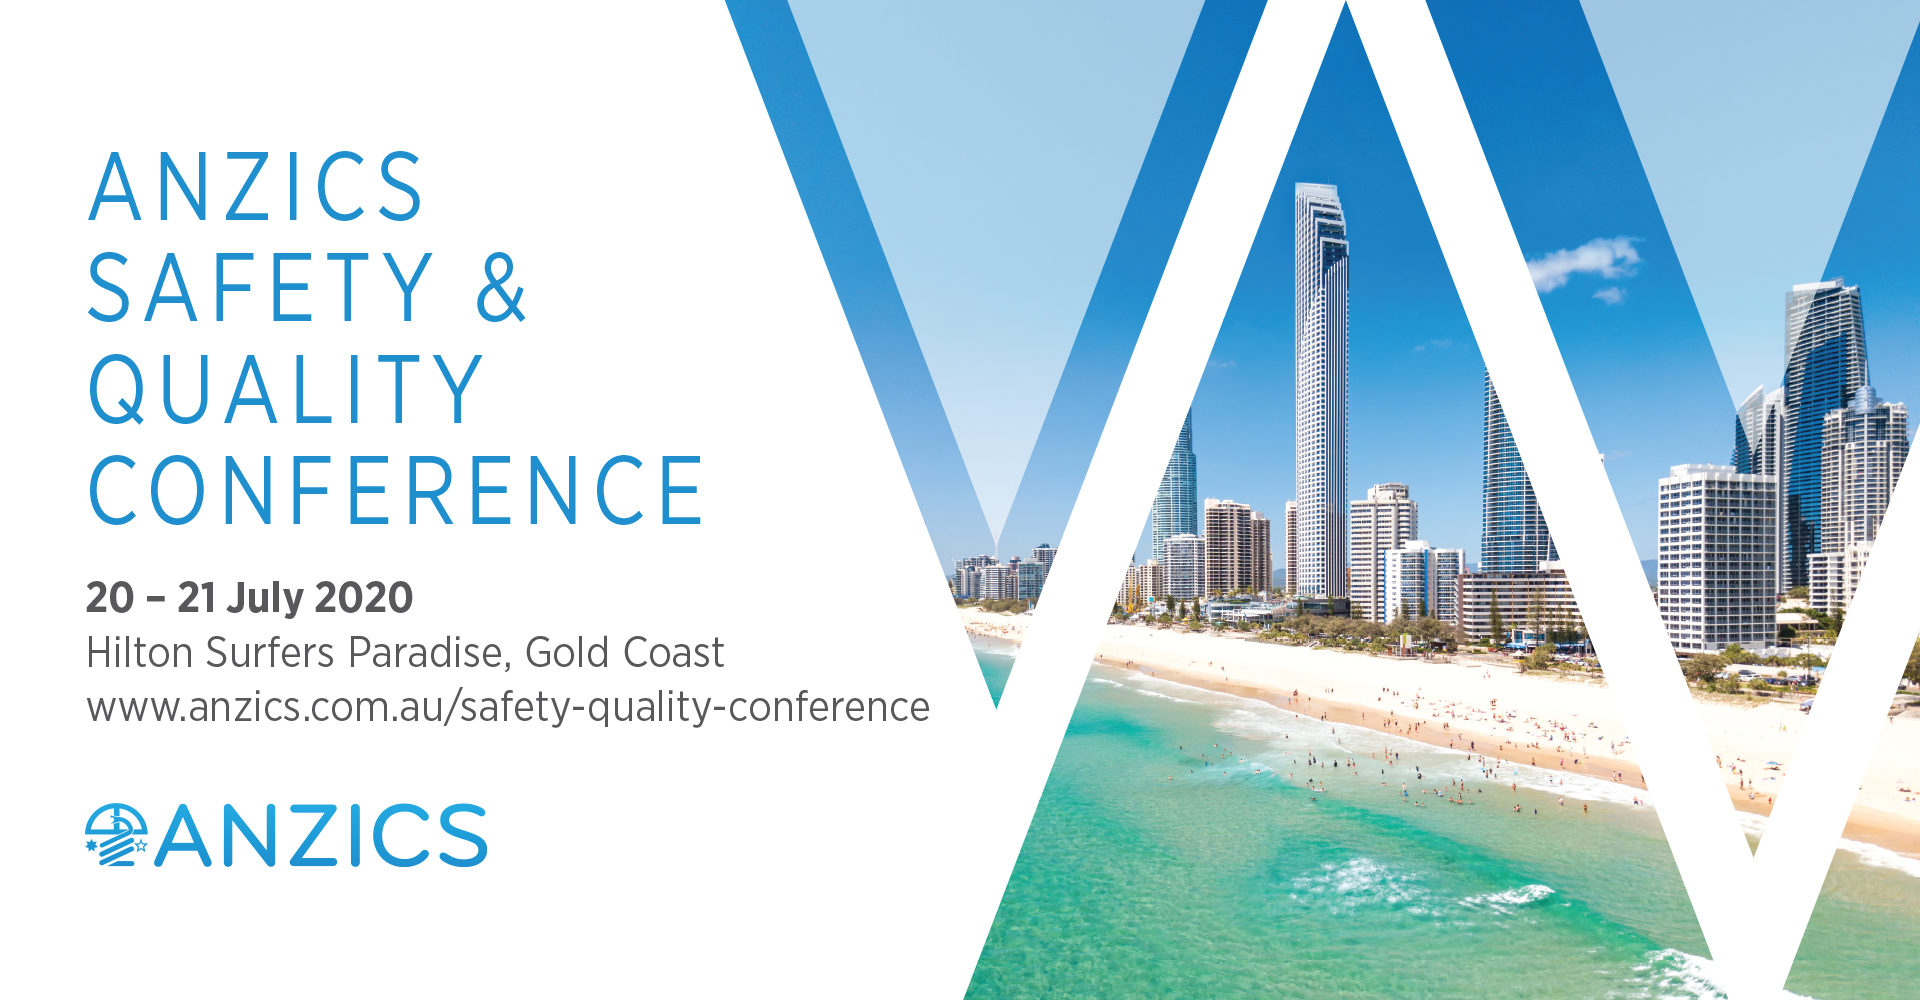 Banner 3 – ANZICS Safety & Quality Conference 2020